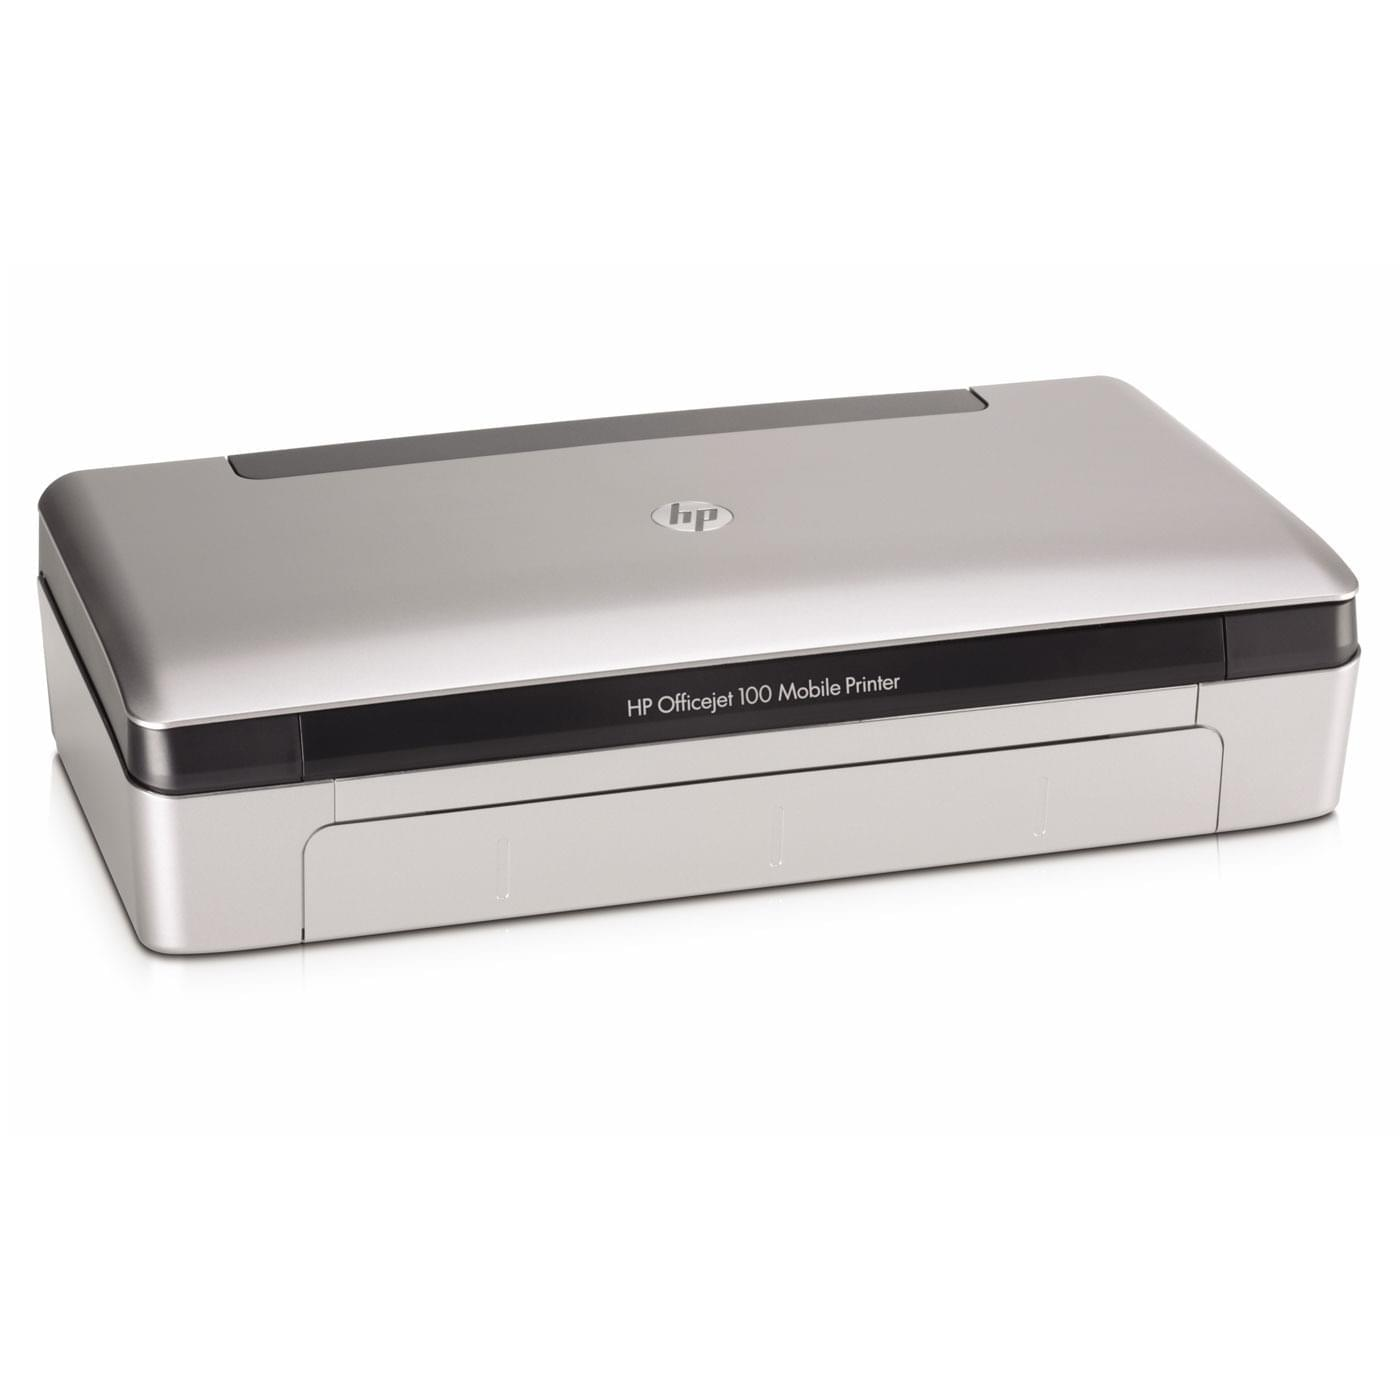 Imprimante HP OfficeJet 100 Mobile Printer - Cybertek.fr - 0